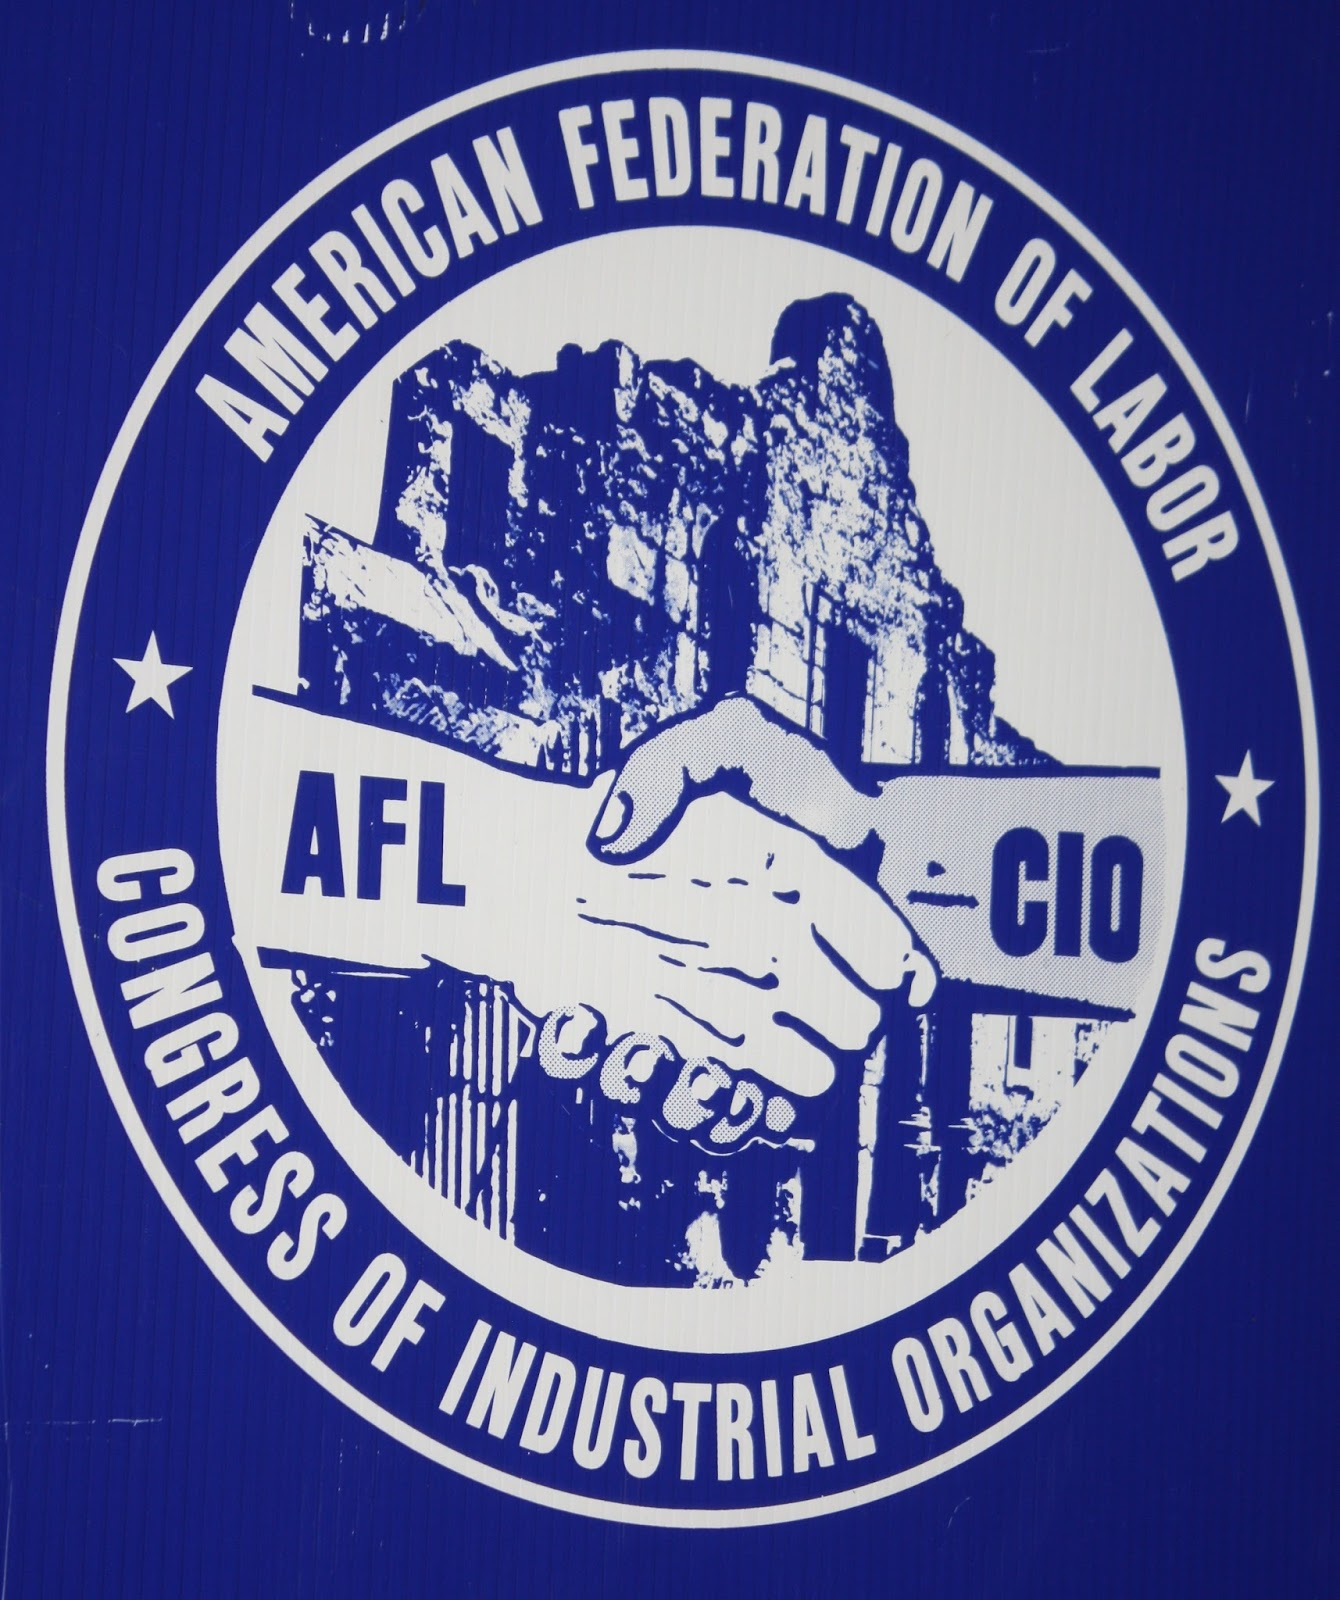 afl cio Union plus stands strong with the 13 million afl-cio labor union members with unique savings and benefits including discounts on at&t, travel, entertainment, hardship help grants and scholarships.